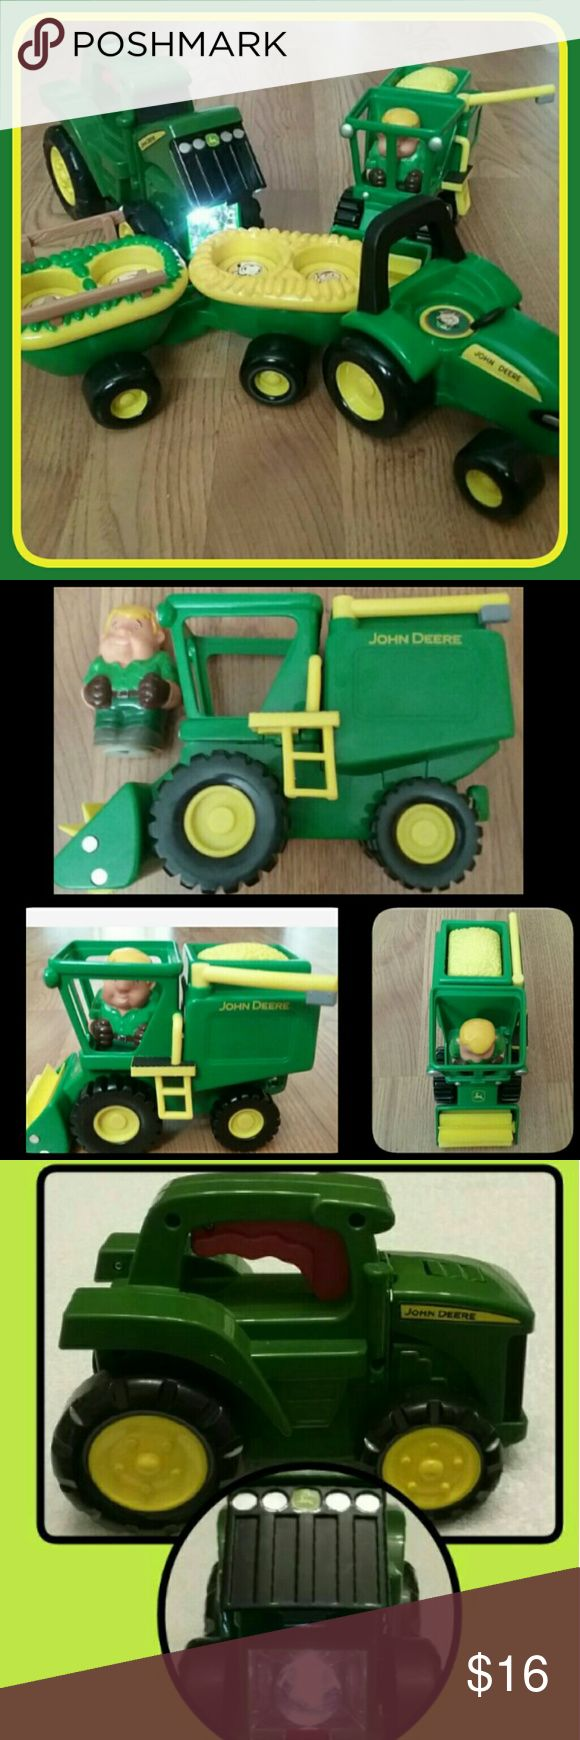 John Deere Toddler Toys 3pc. John Deere Toddler Toys  INCLUDES:  Flashlight *works well  *makes sound (Batteries included) Farm tractor with farmer figure & Old McDonald's Farm Animal Tractor (as seen in pics) uses 3-AAA batteries, not included. Not working well. Battery compartment needs some cleaning. (price is being considered with this flaw) John Deere Other